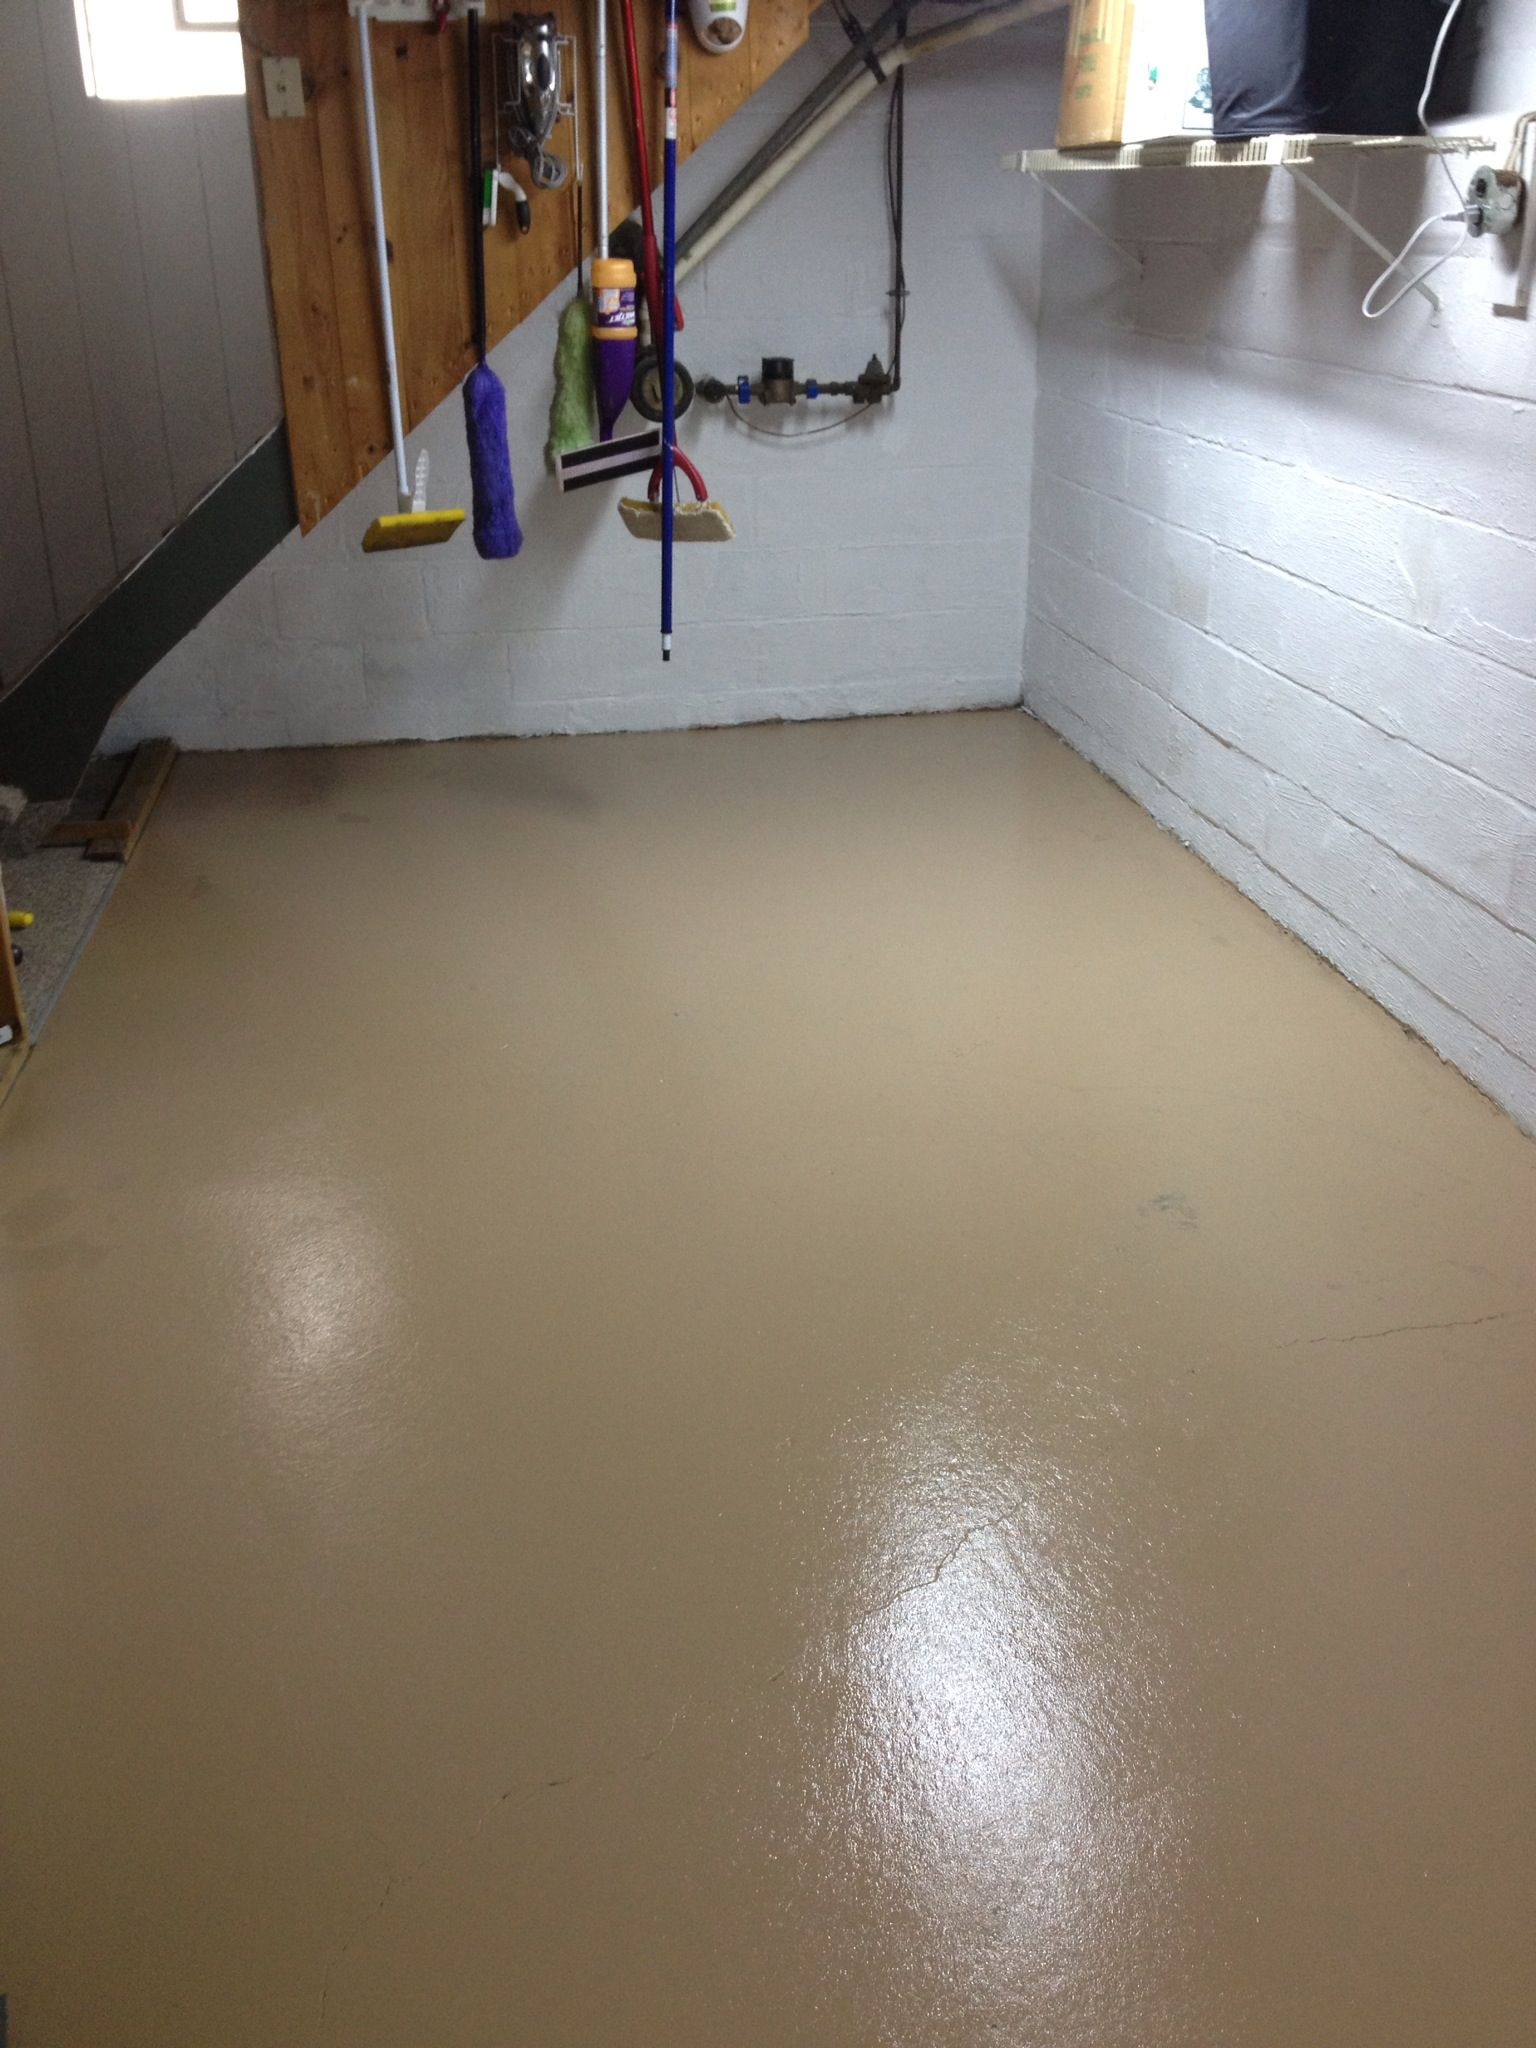 Basement Laundry Room Faceliftnew Floor Paint And Wall Paint - Painted basement floor ideas